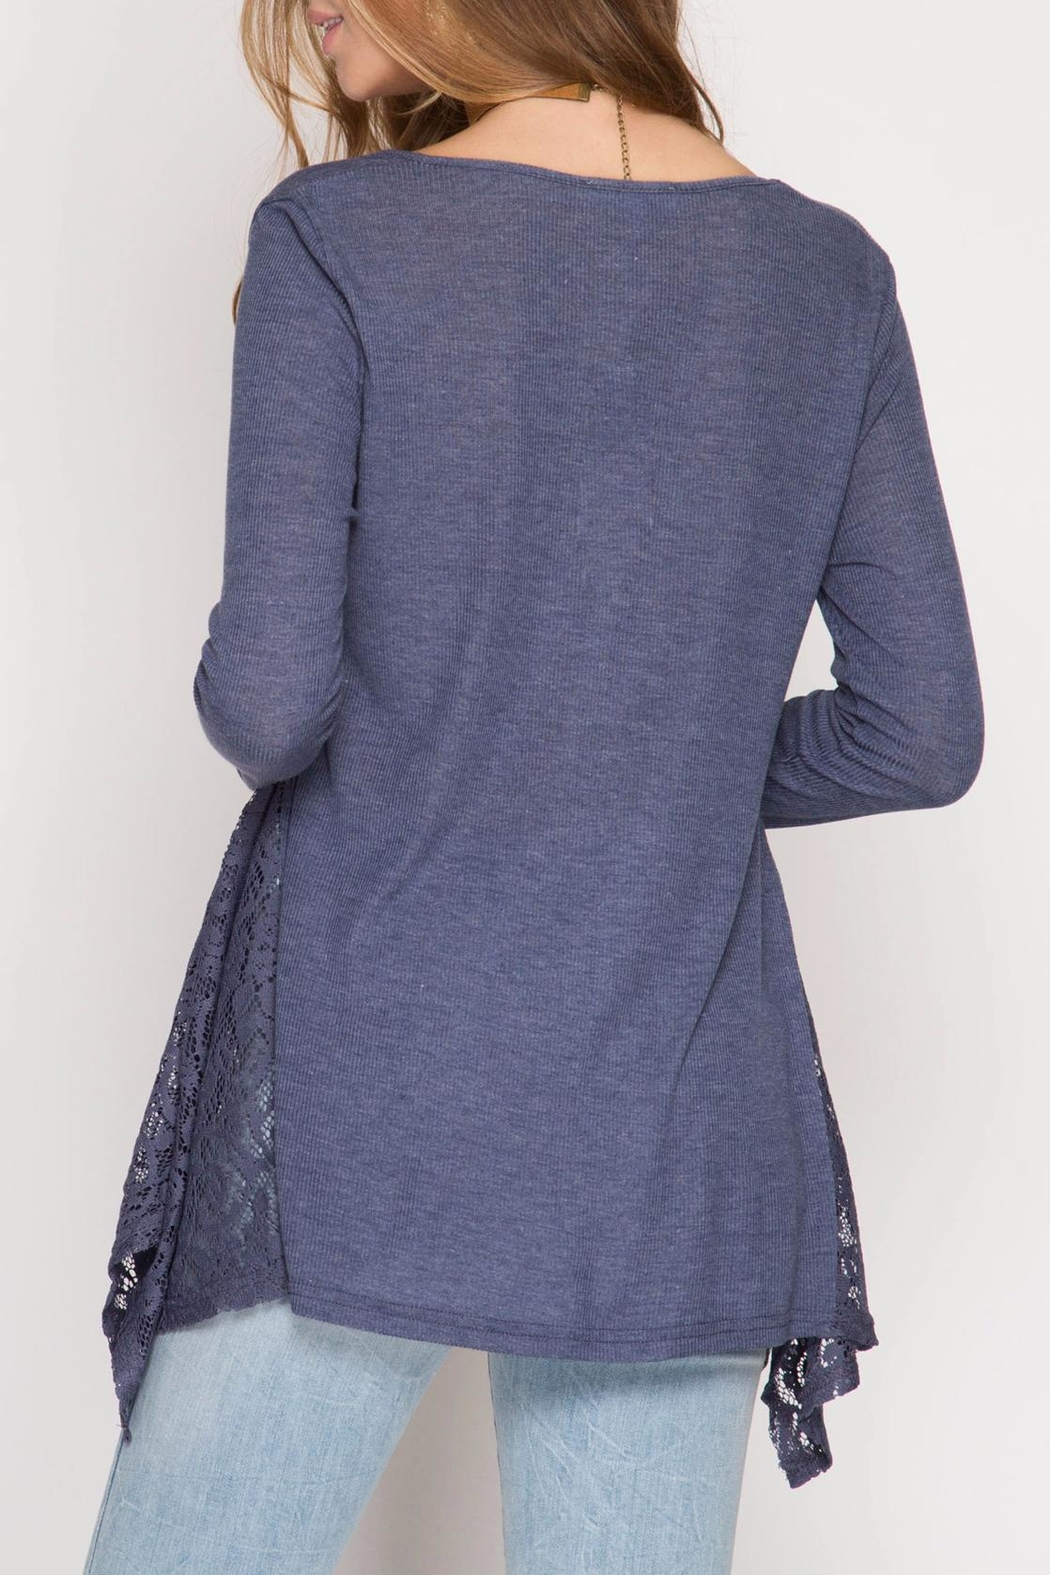 She + Sky V Neck Lace Top - Front Full Image